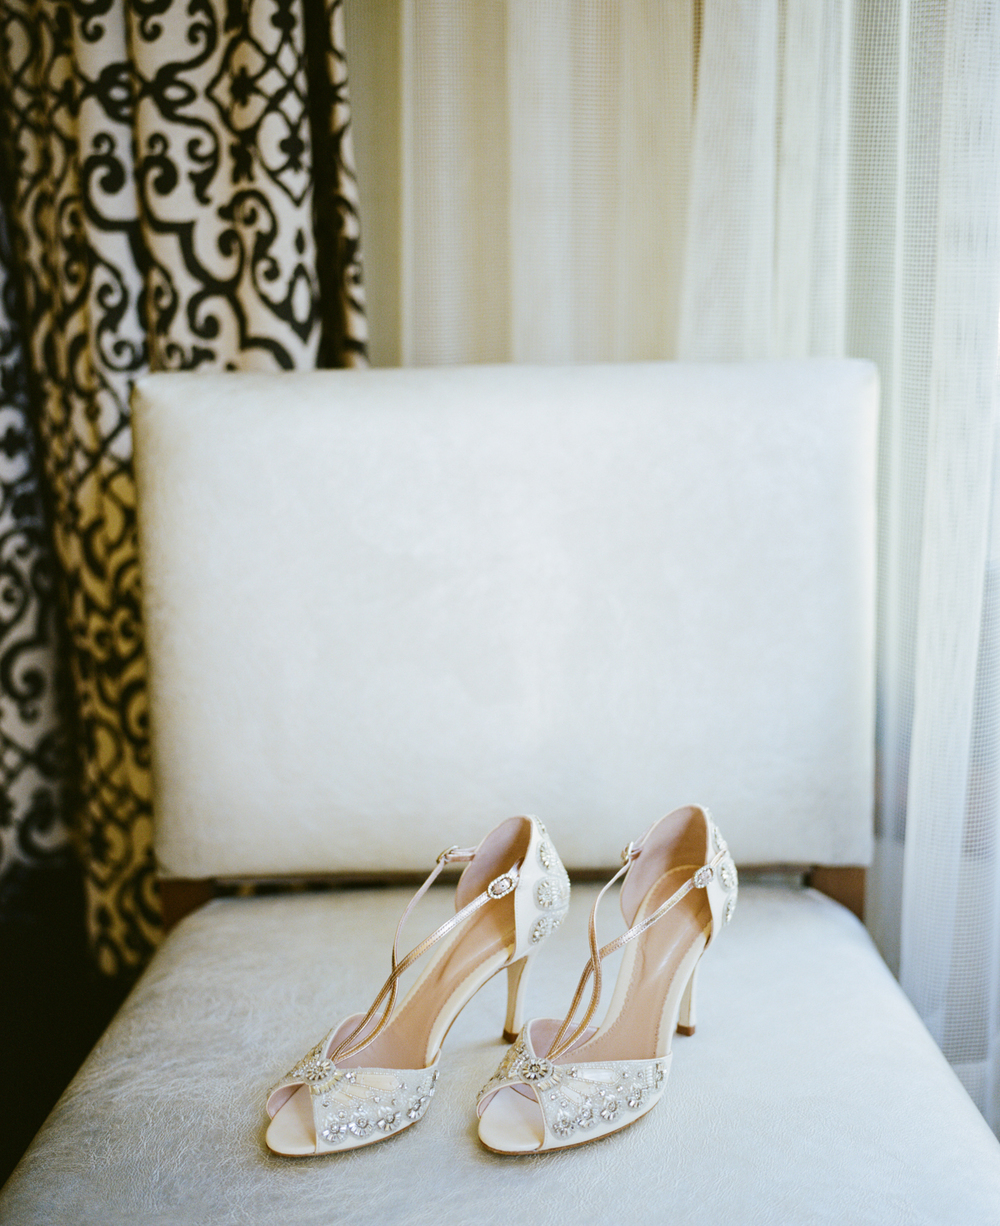 Kelly + Josh | Fall wedding at the Park Hyatt Beaver Creek | Emmy London shoes from Little White Dress | Ash Imagery